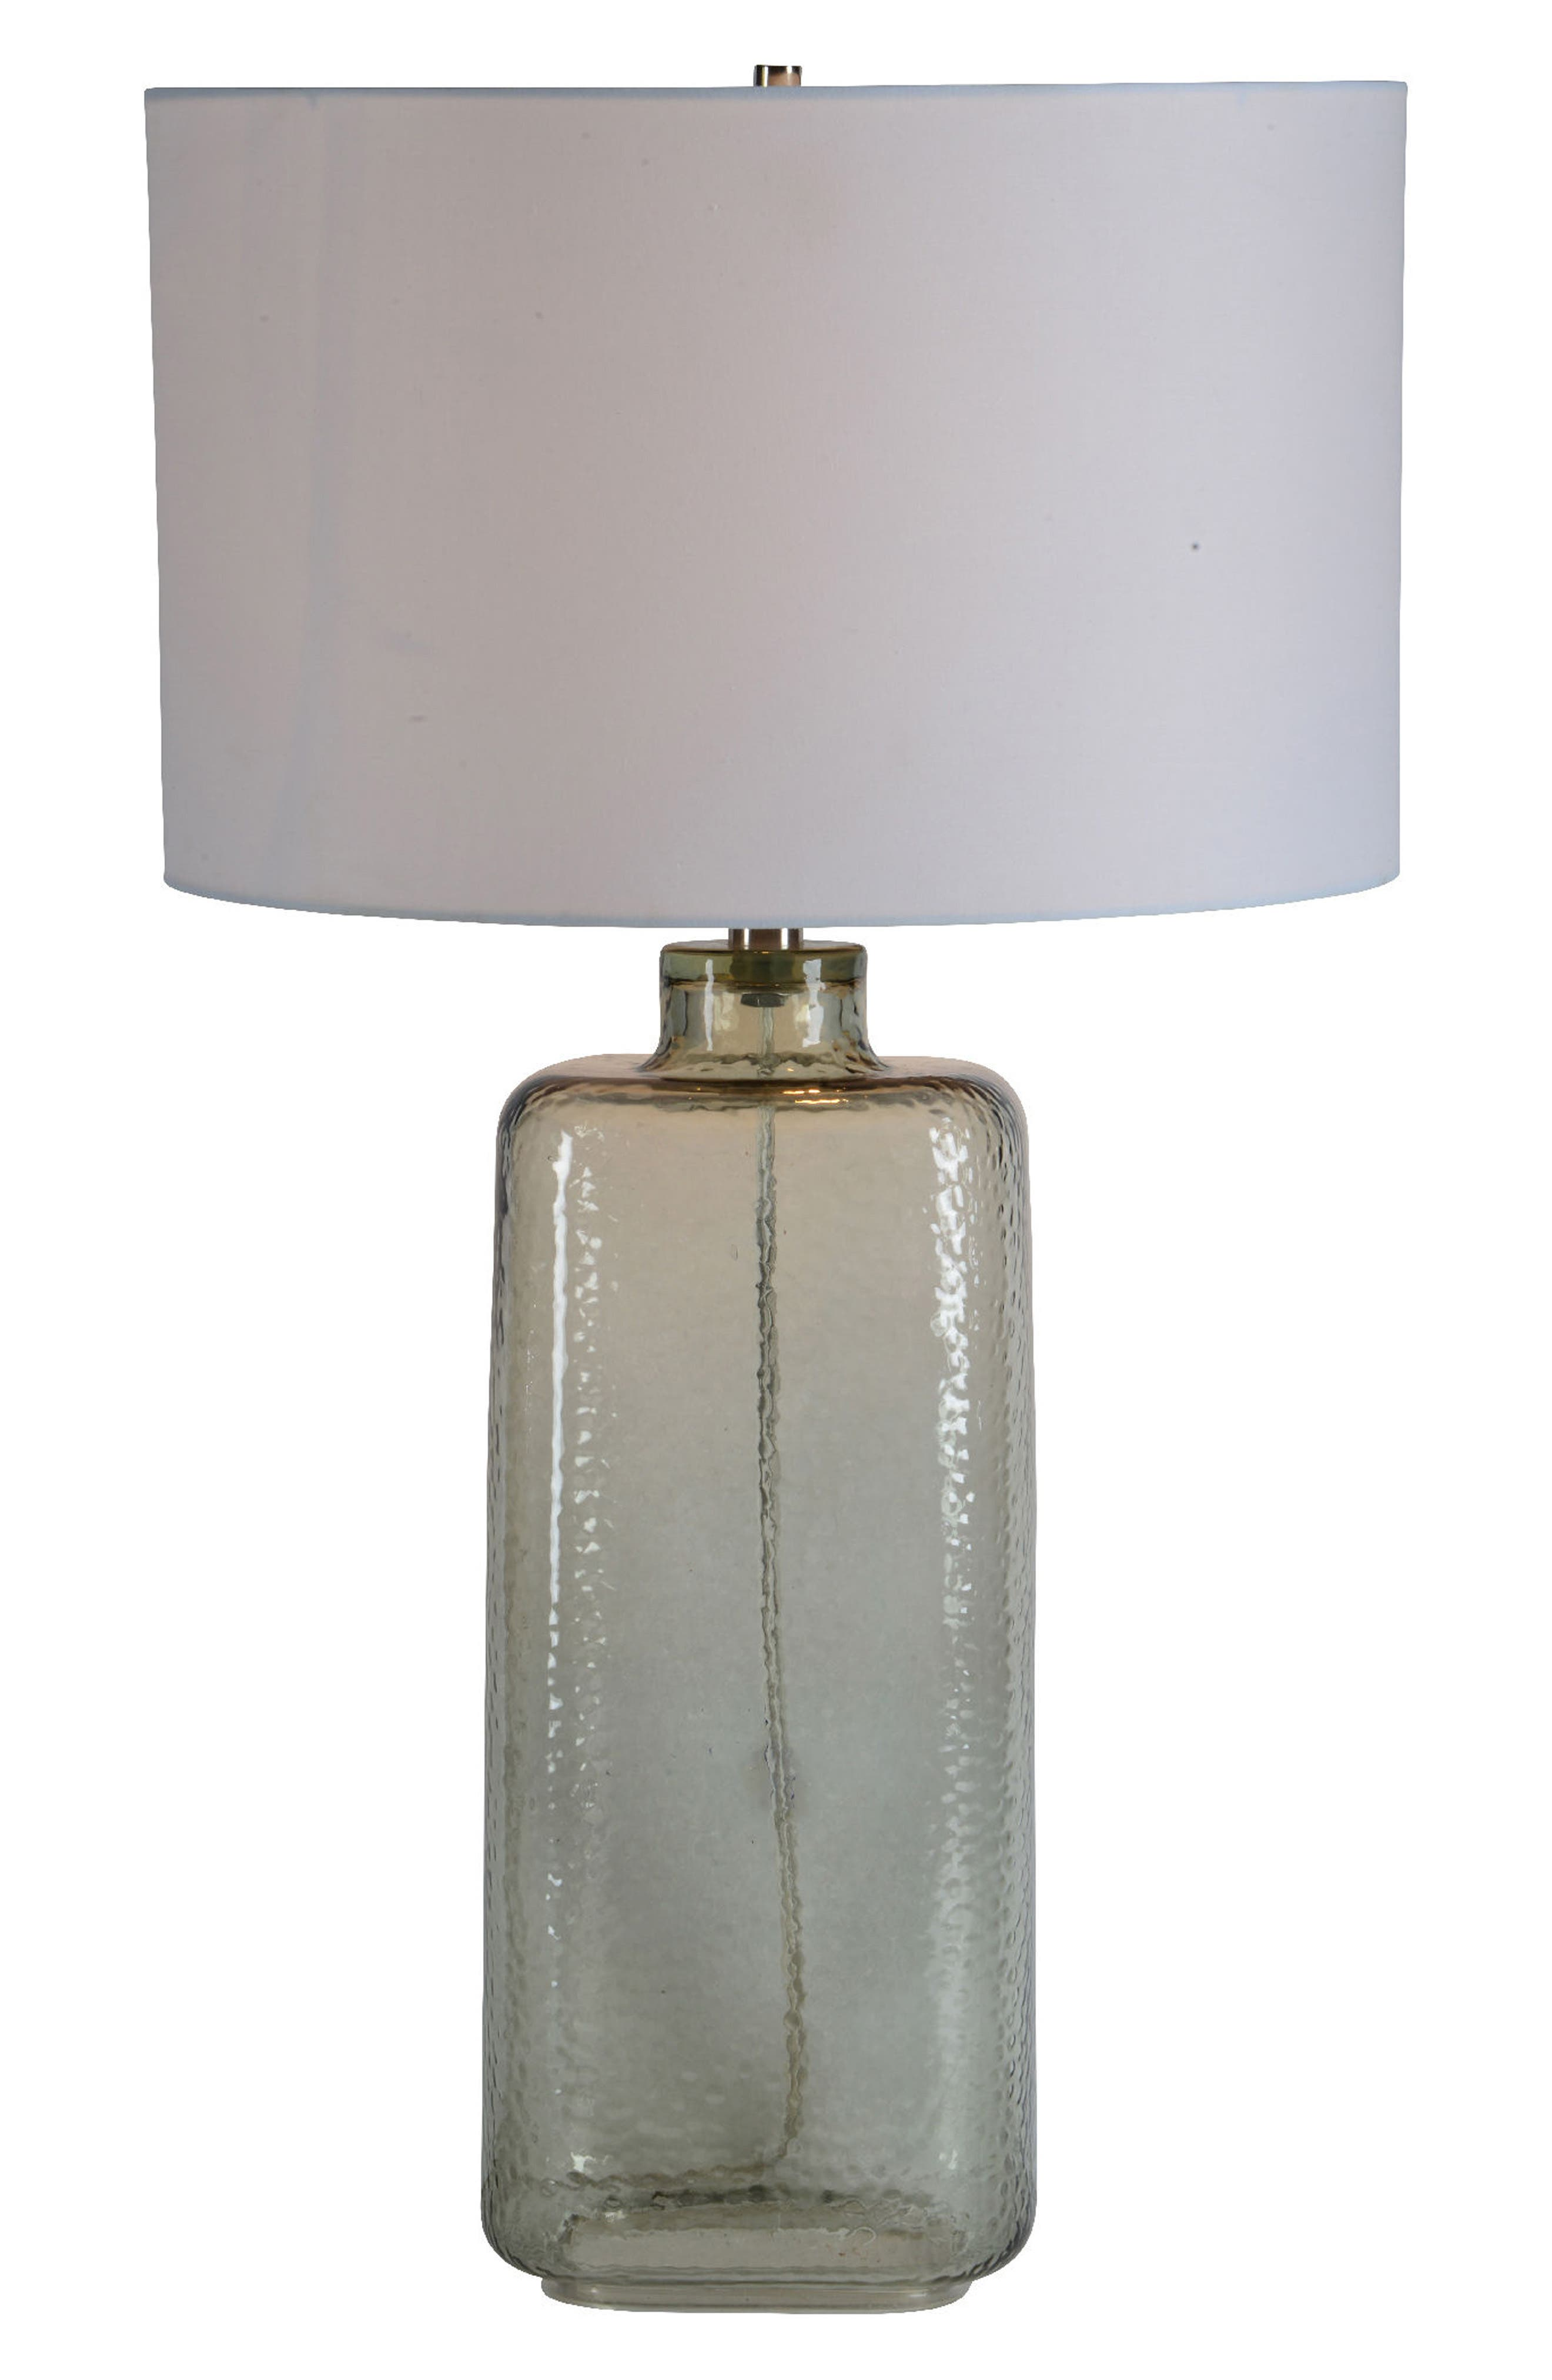 Main Image - Renwil Southall Table Lamp